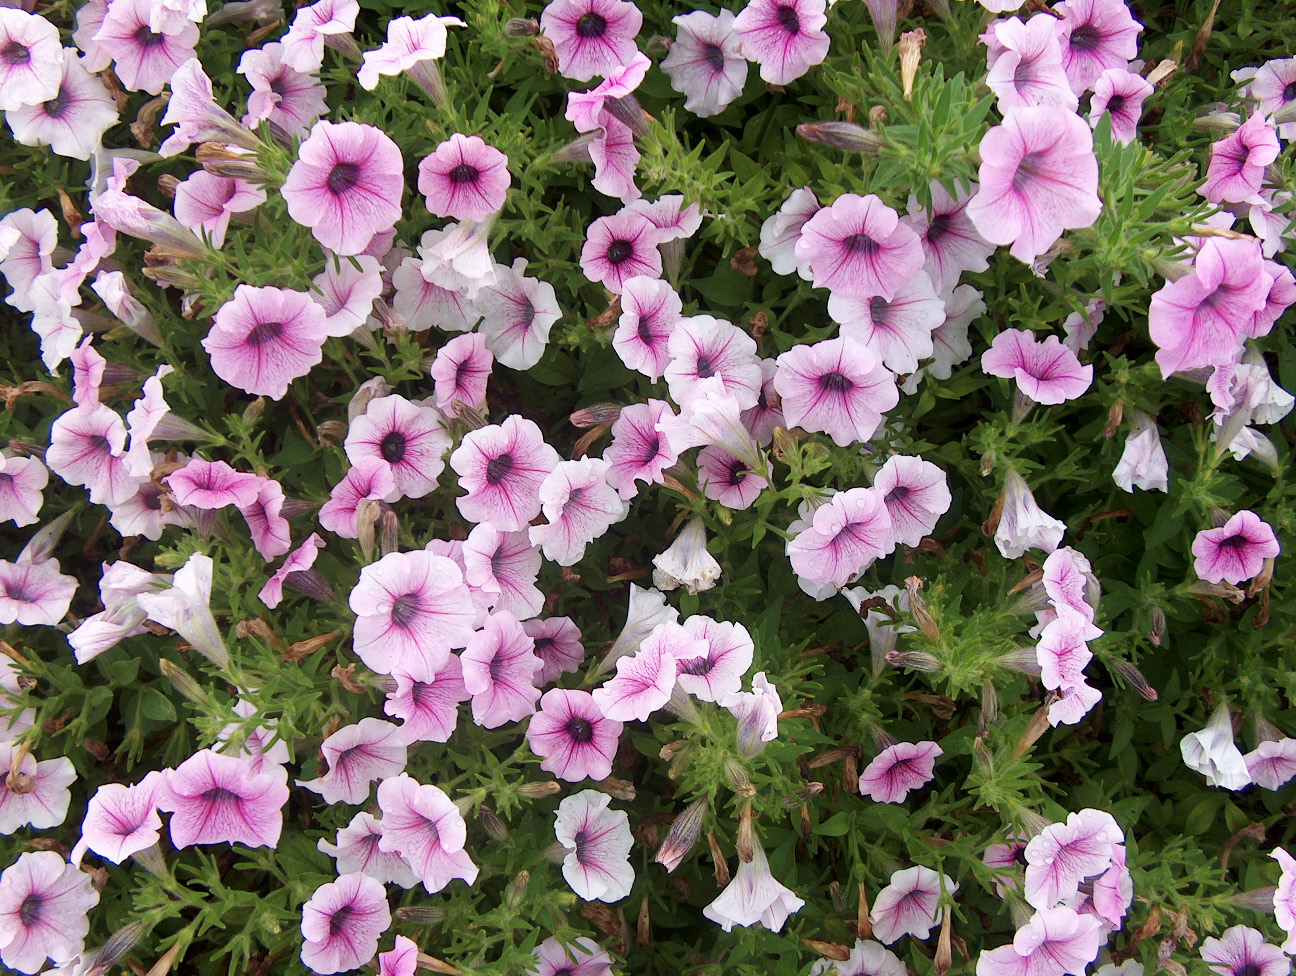 Petunia 'Shock Wave Pink Vein' / Petunia 'Shock Wave Pink Vein'